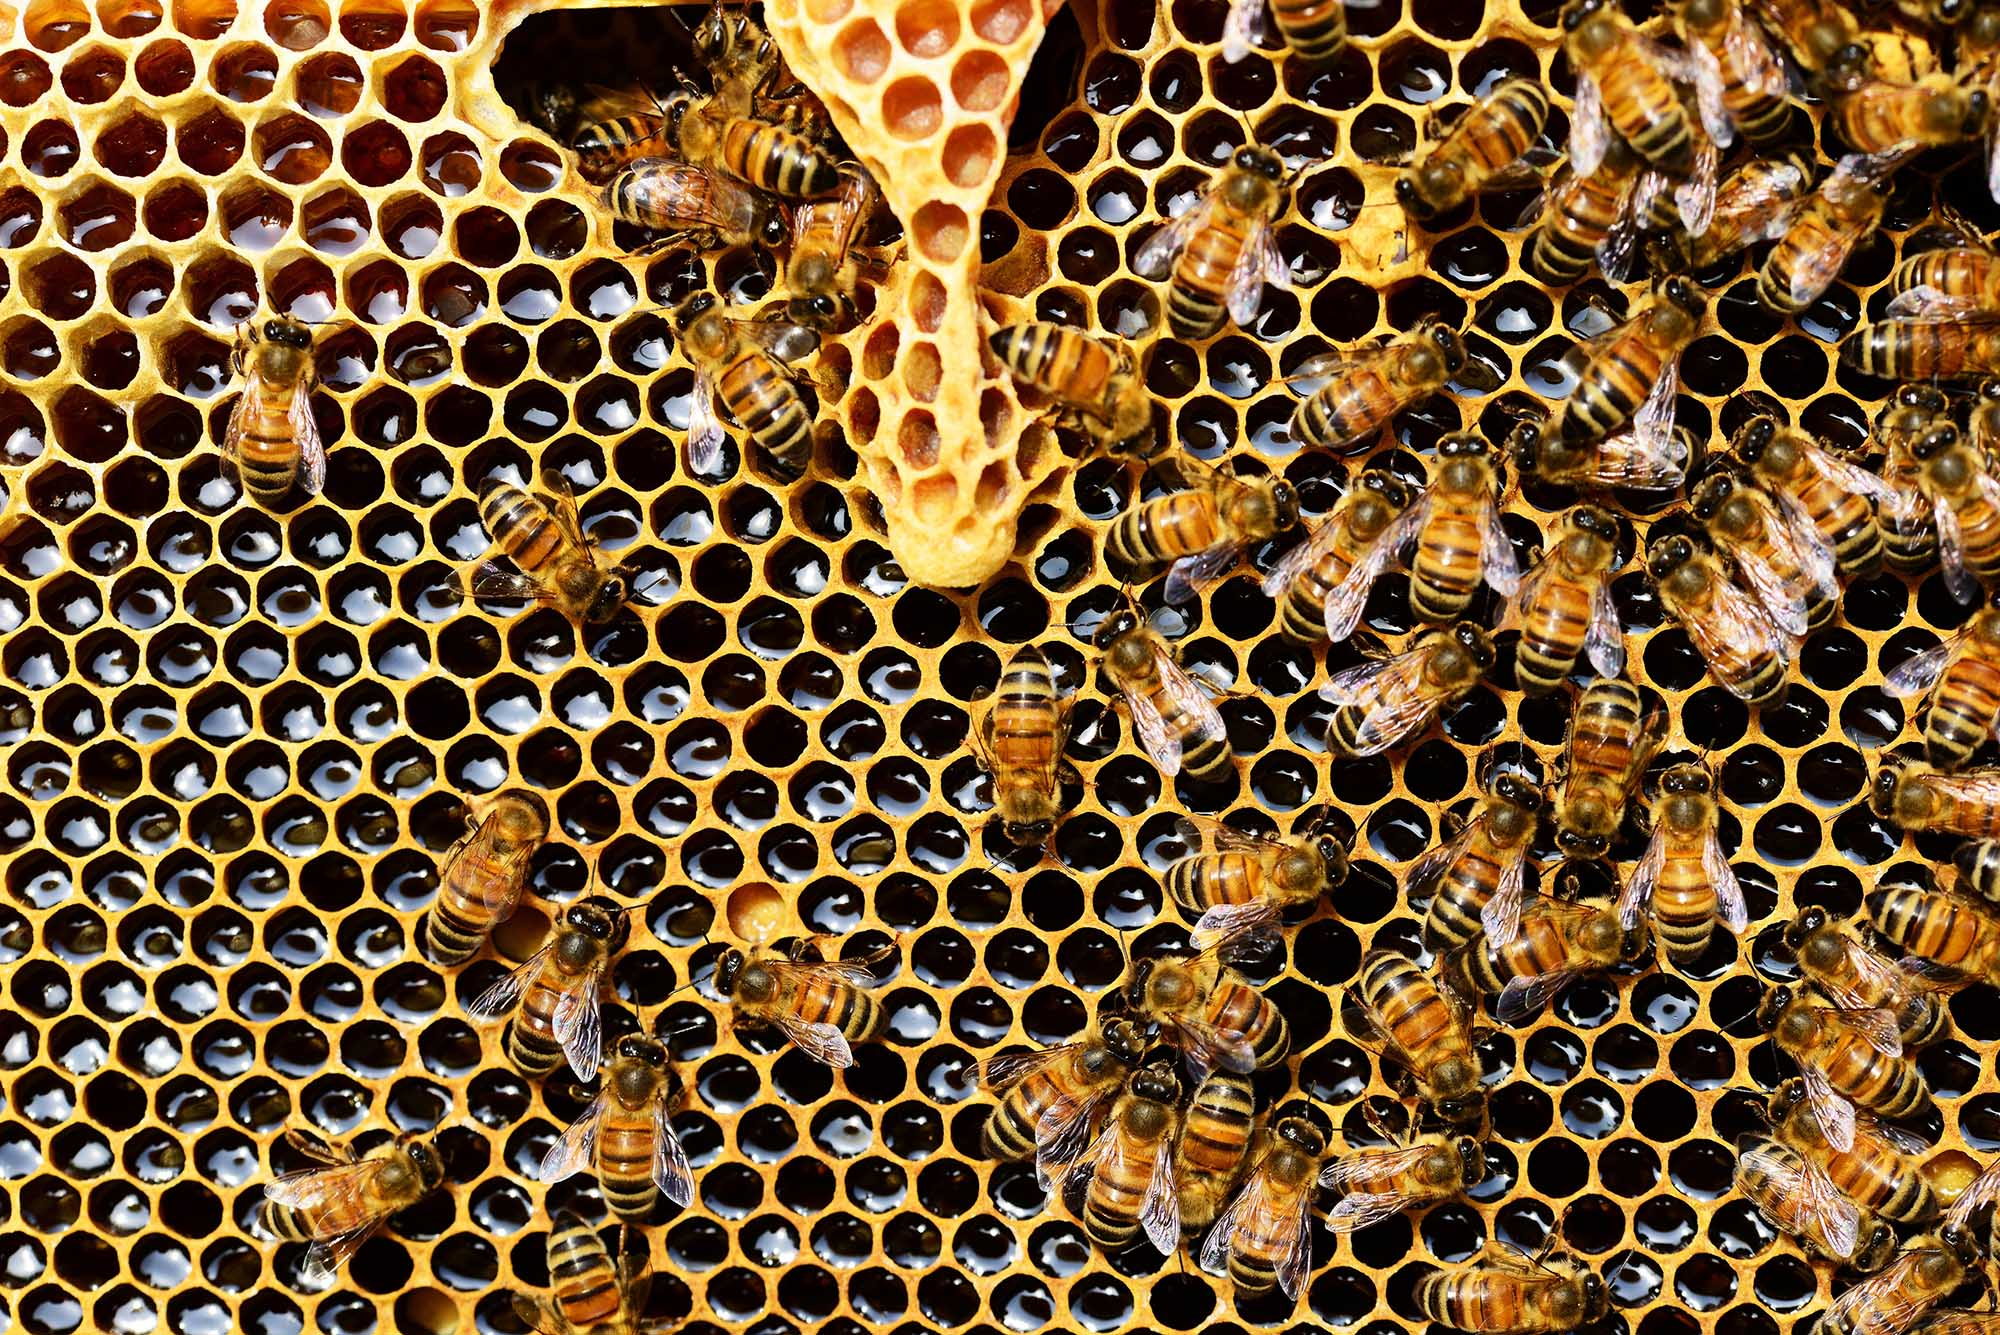 Bees making honey in honeycomb